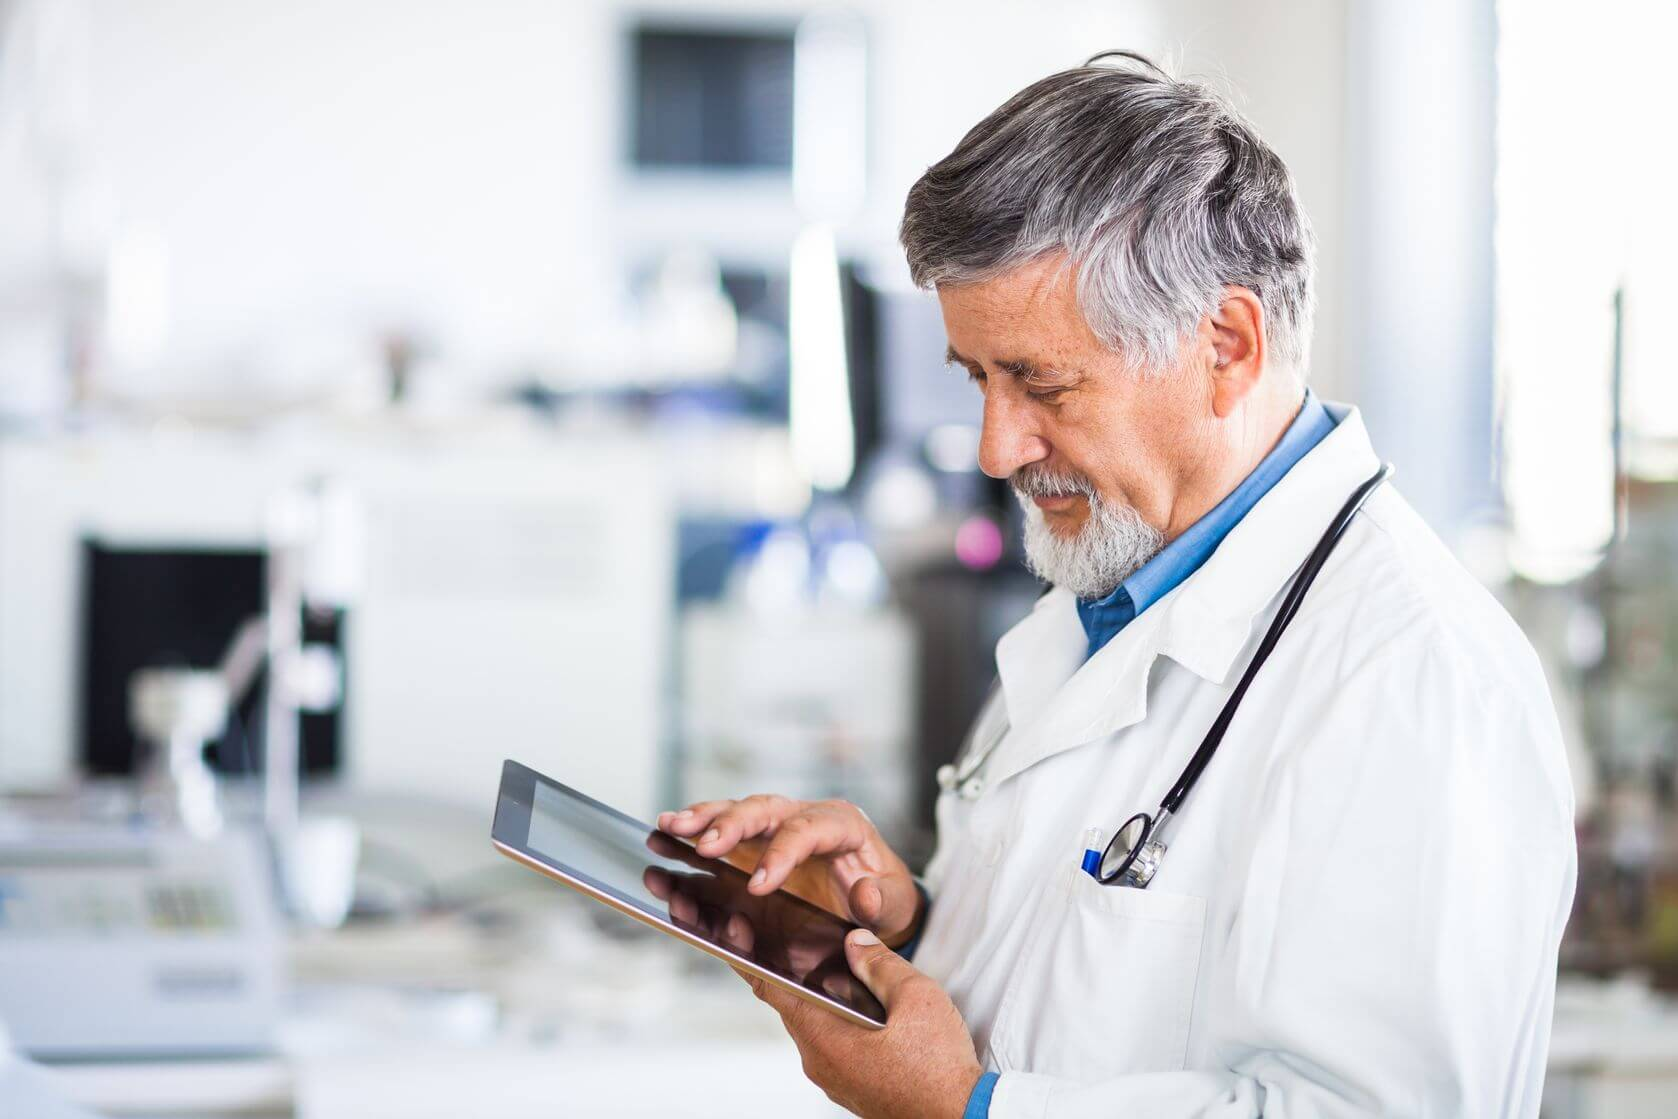 Male doctor looking at digital tablet screen